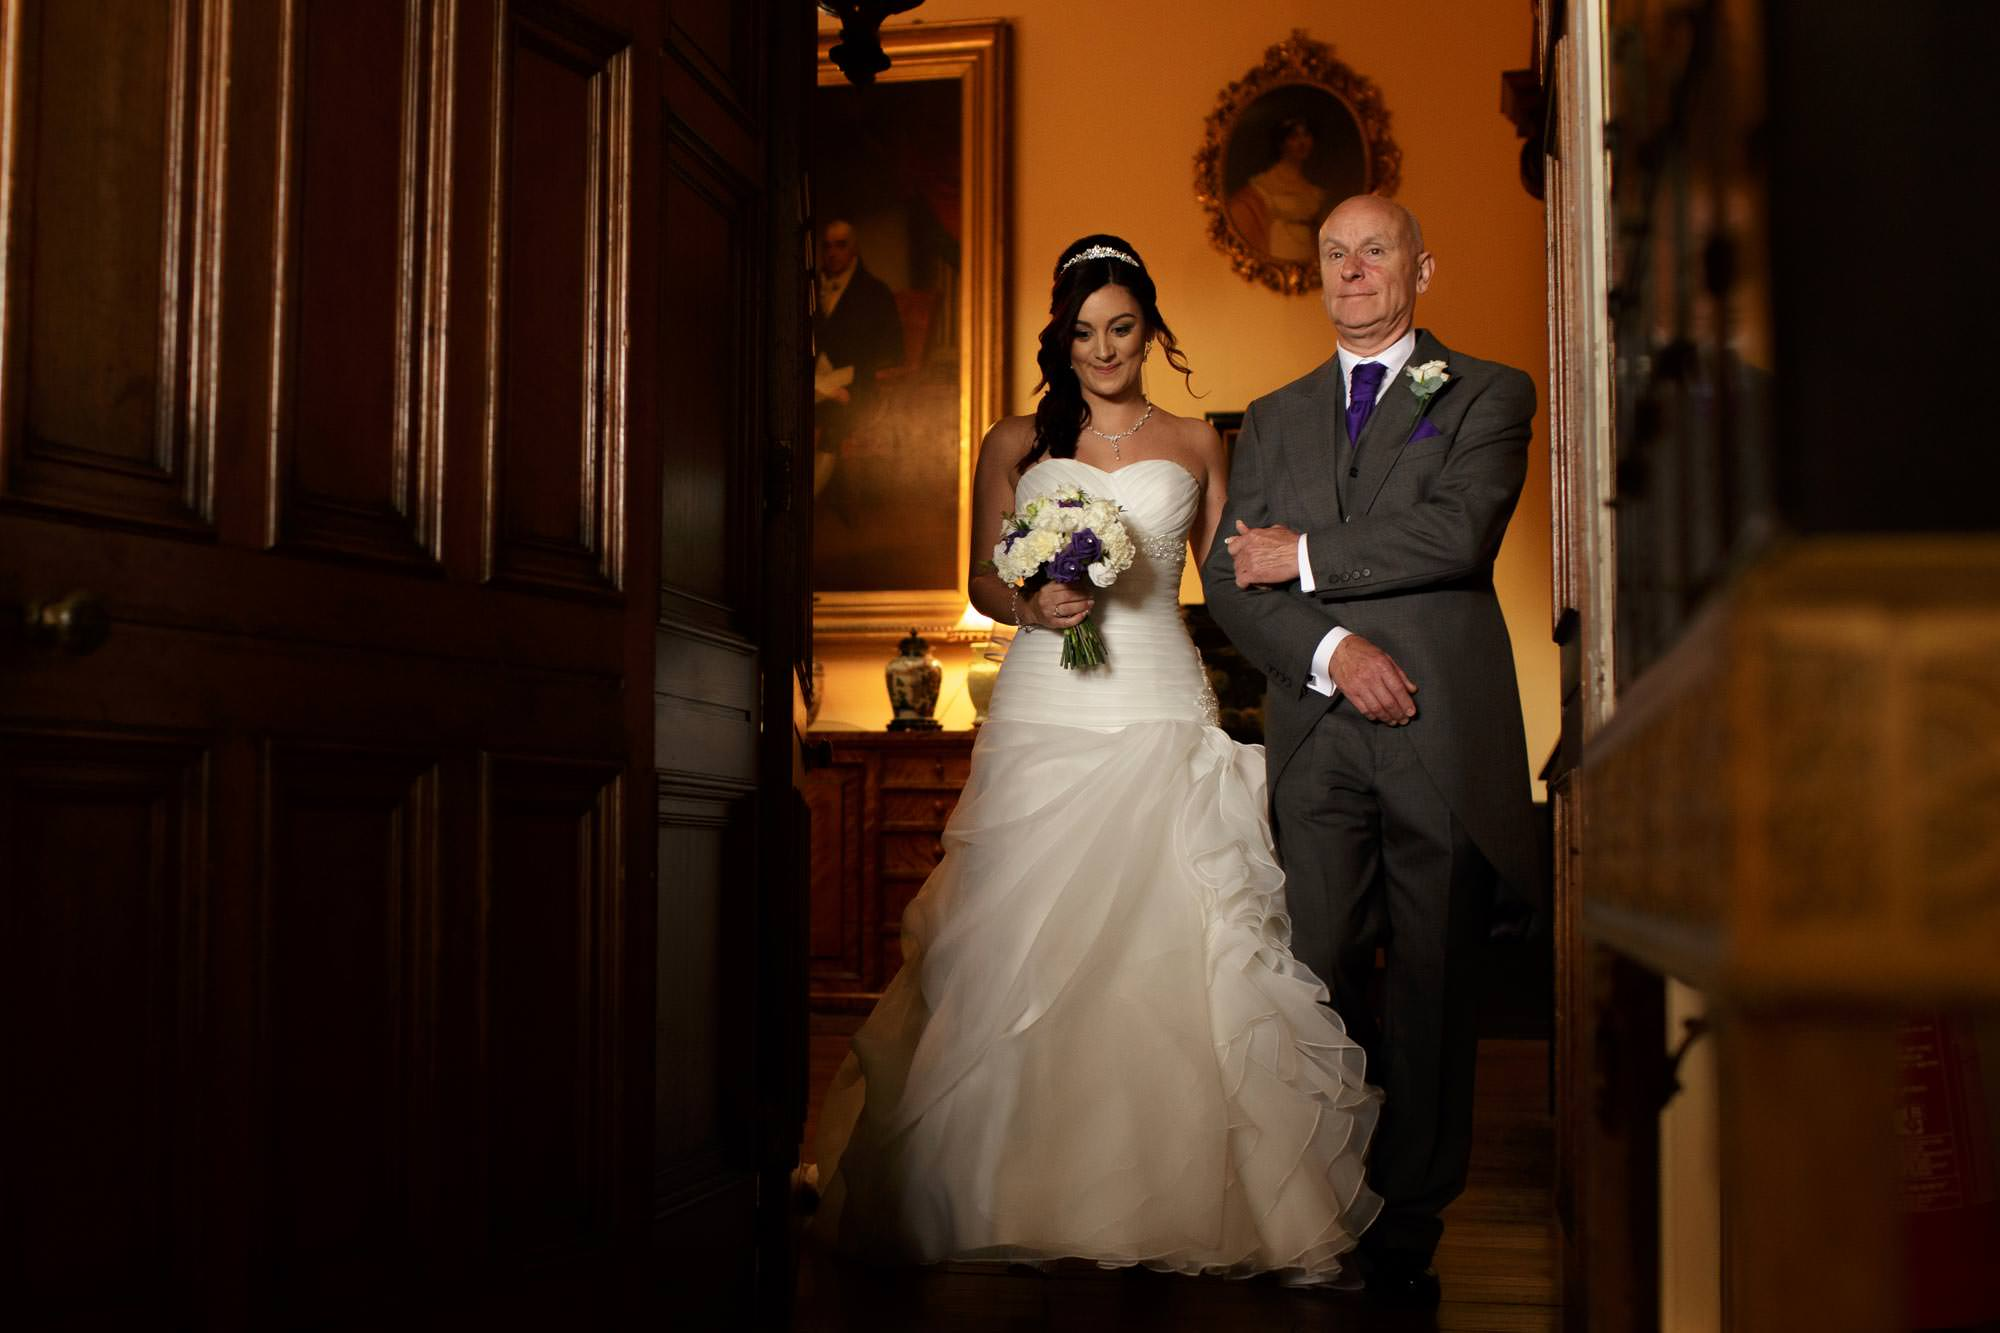 Dad walking his daughter down the aisle at Arley Hall Wedding